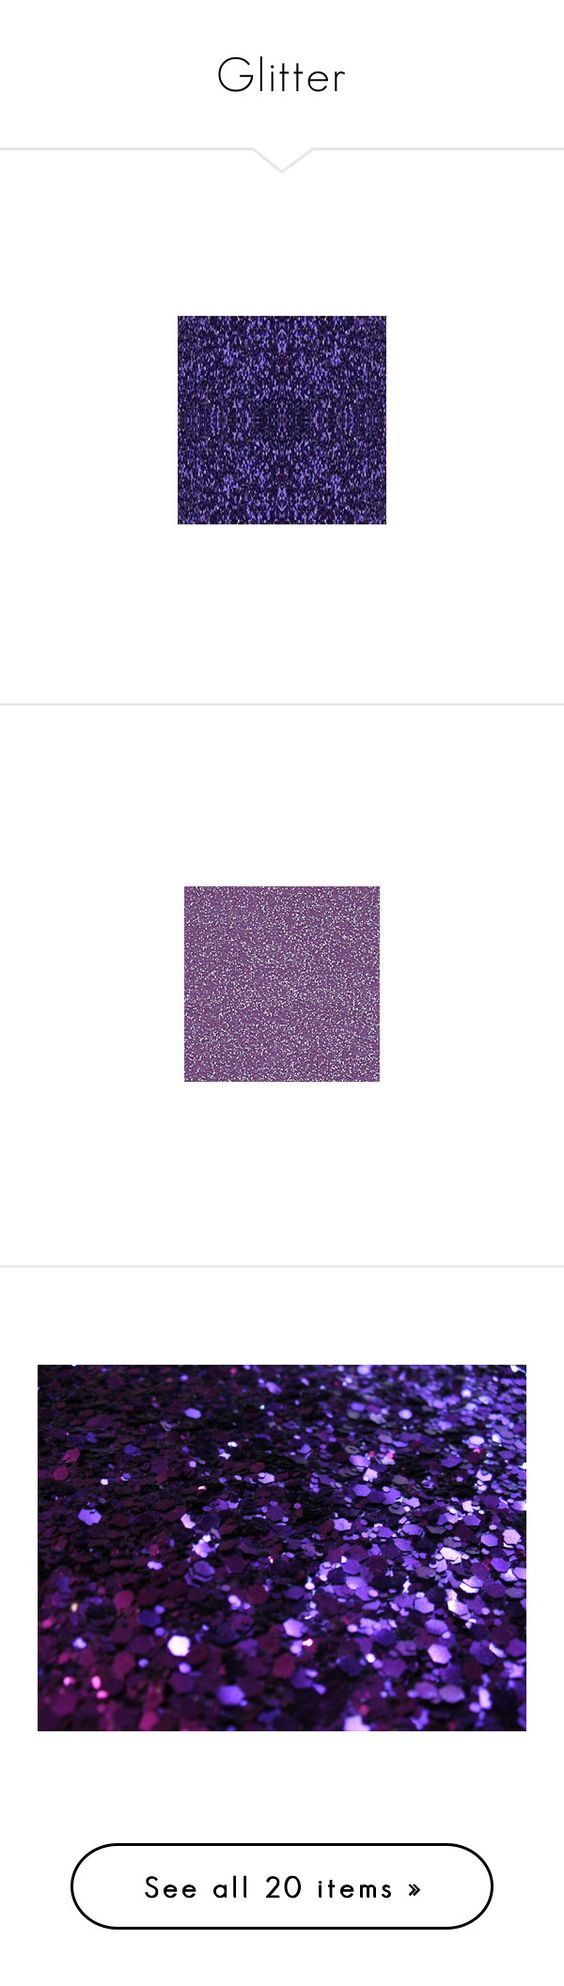 """""""Glitter"""" by nutz4lutz ❤ liked on Polyvore featuring backgrounds, glitter, purple, - backgrounds, pictures, wallpaper, glitter backgrounds, pics, fillers and patterns"""